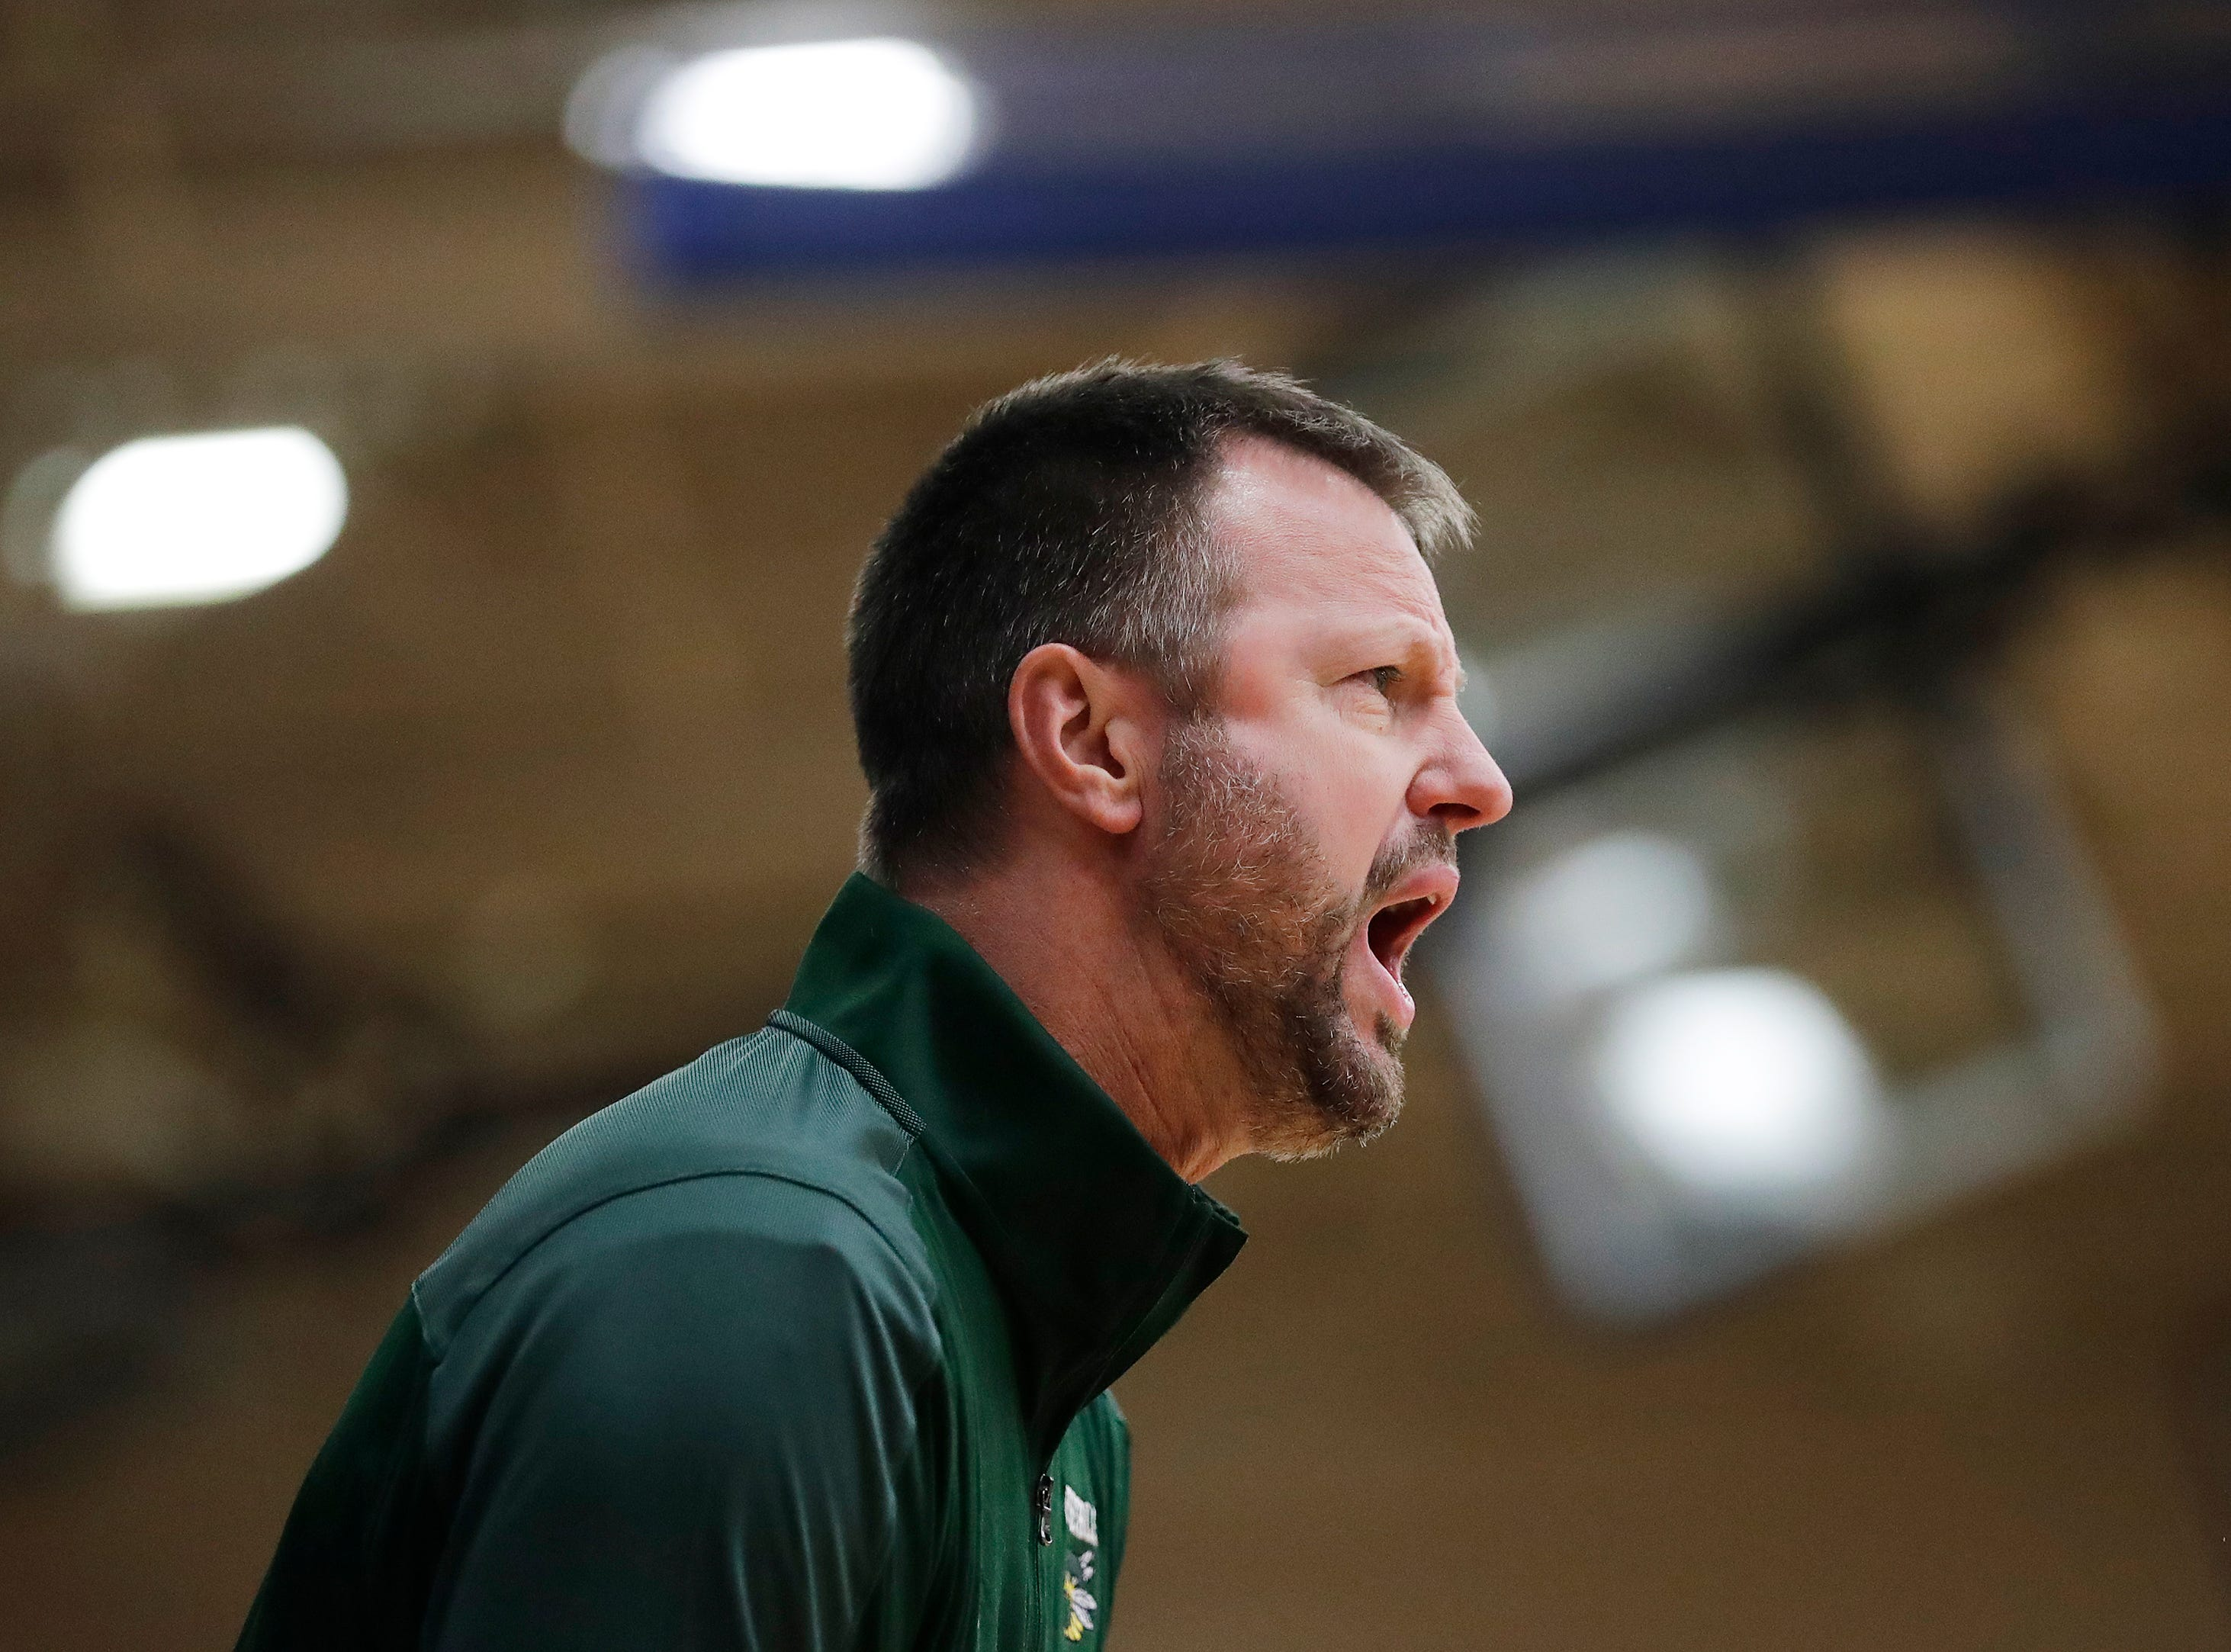 Green Bay Preble head coach Jim Doell shouts instruction during the 1st half of a FRCC girls basketball game at Bay Port high school on Friday, February 8, 2019 in Suamico, Wis.